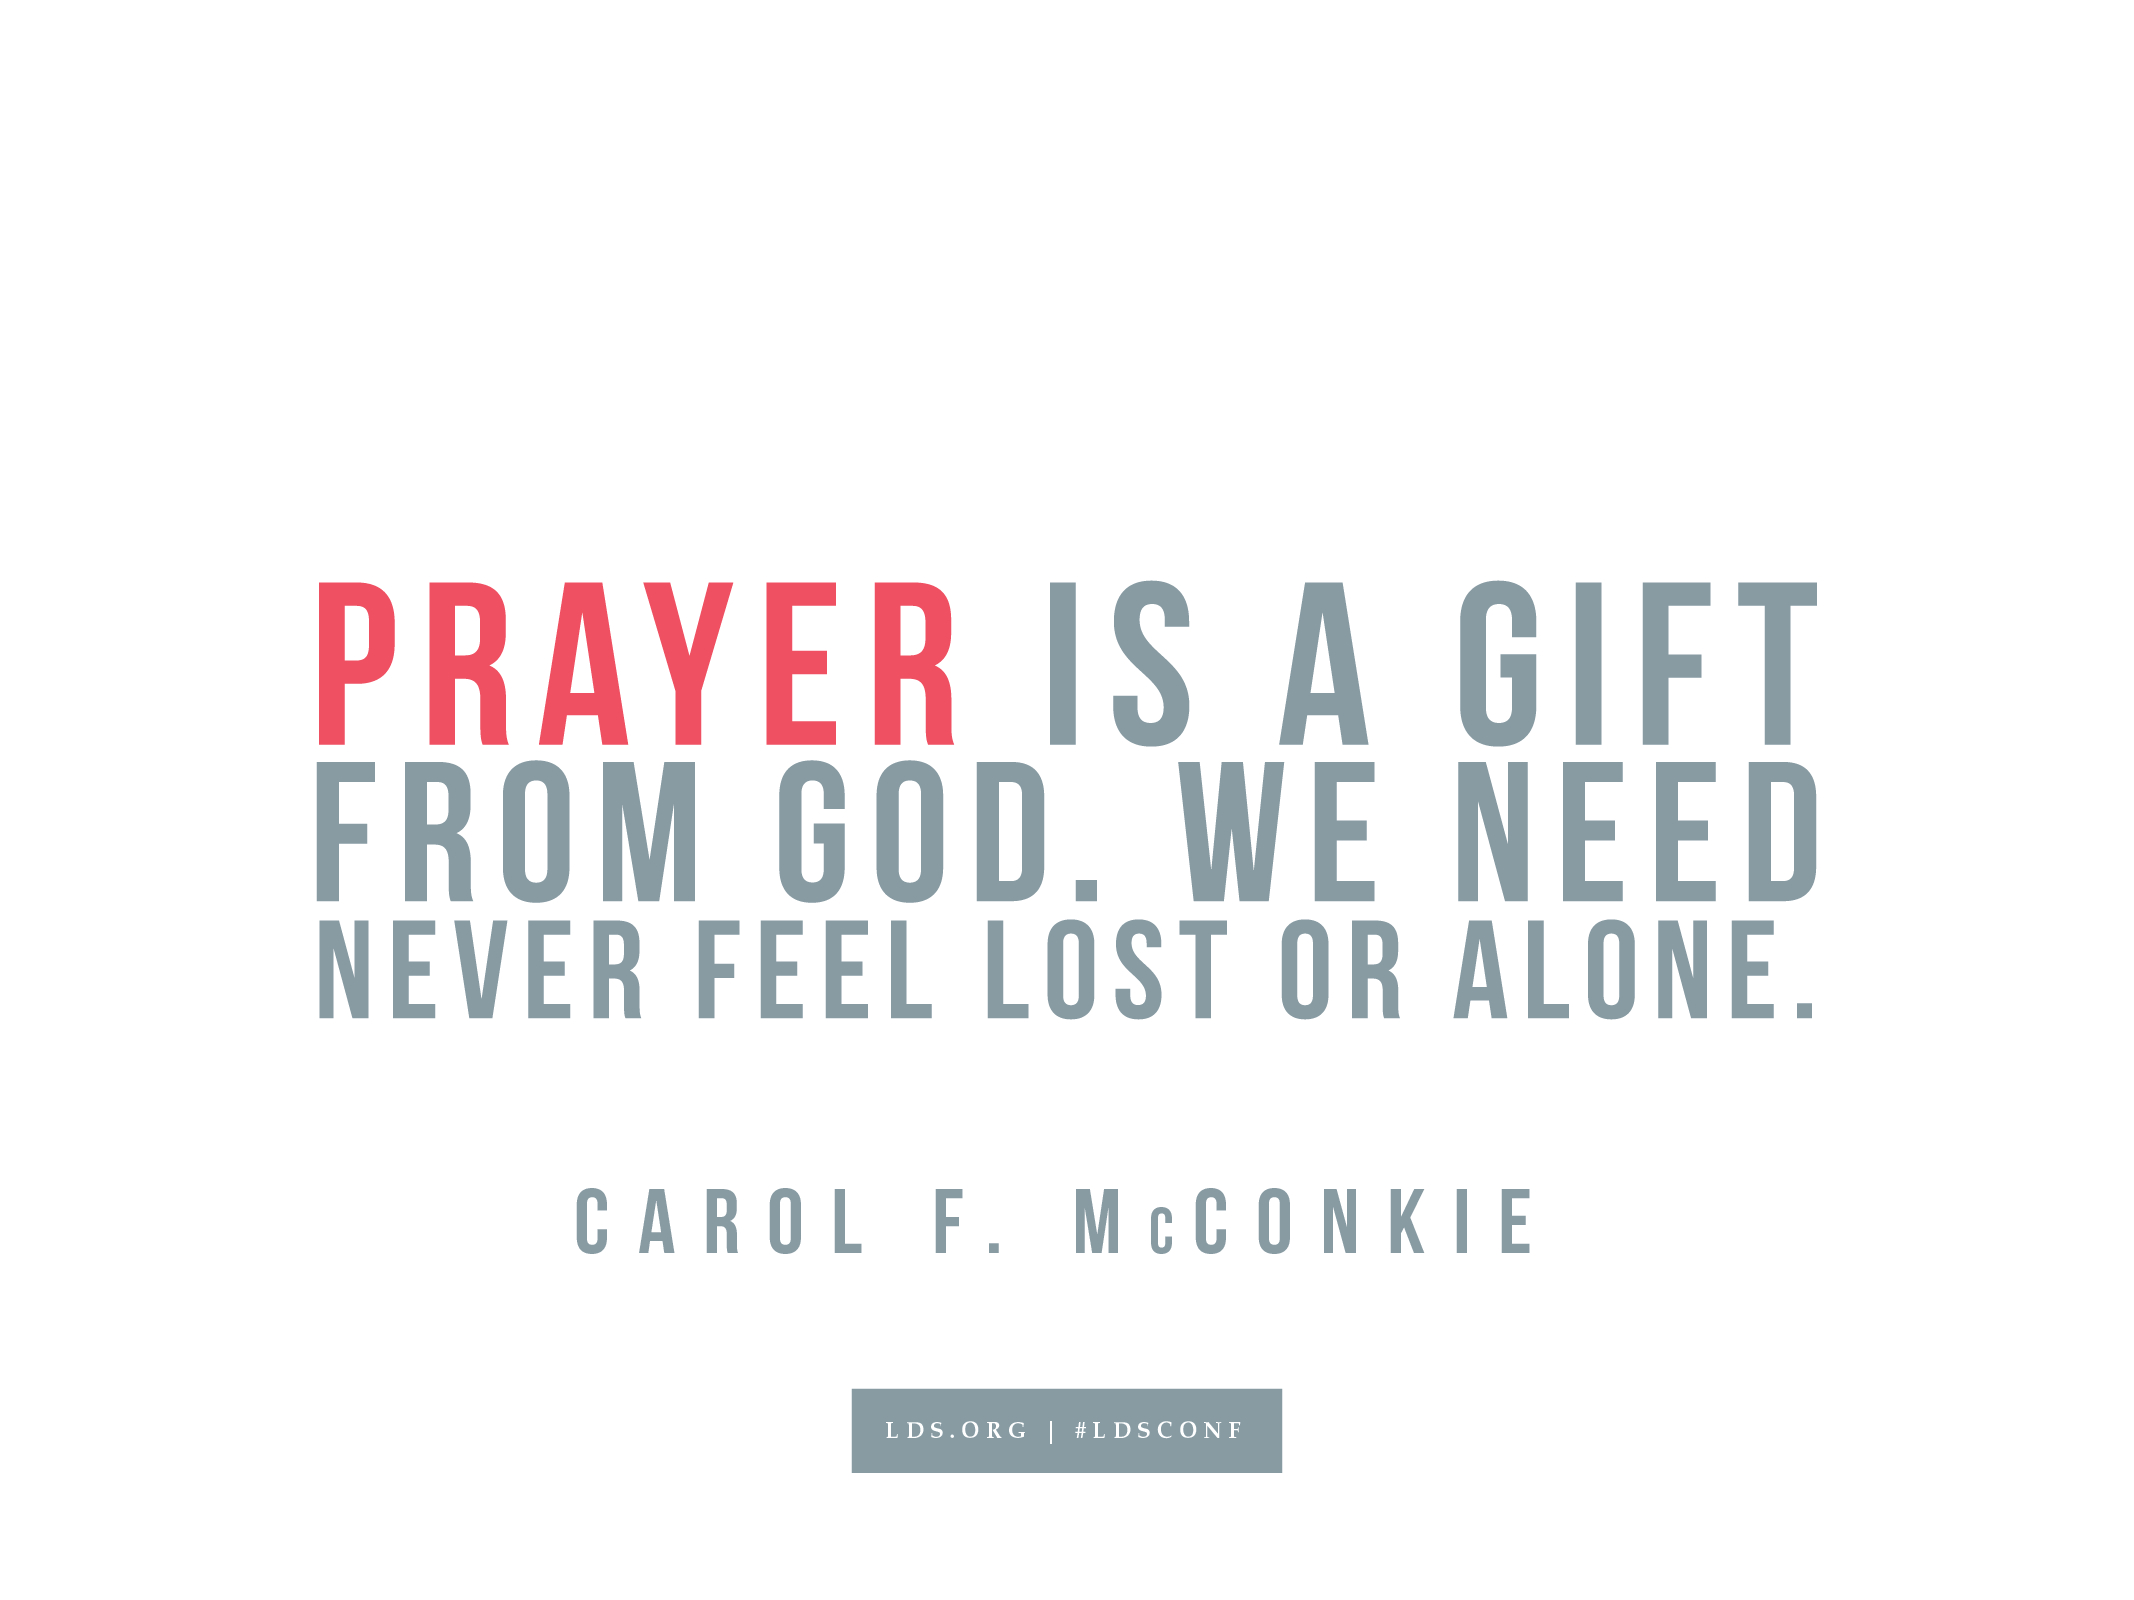 Prayer Is a Gift